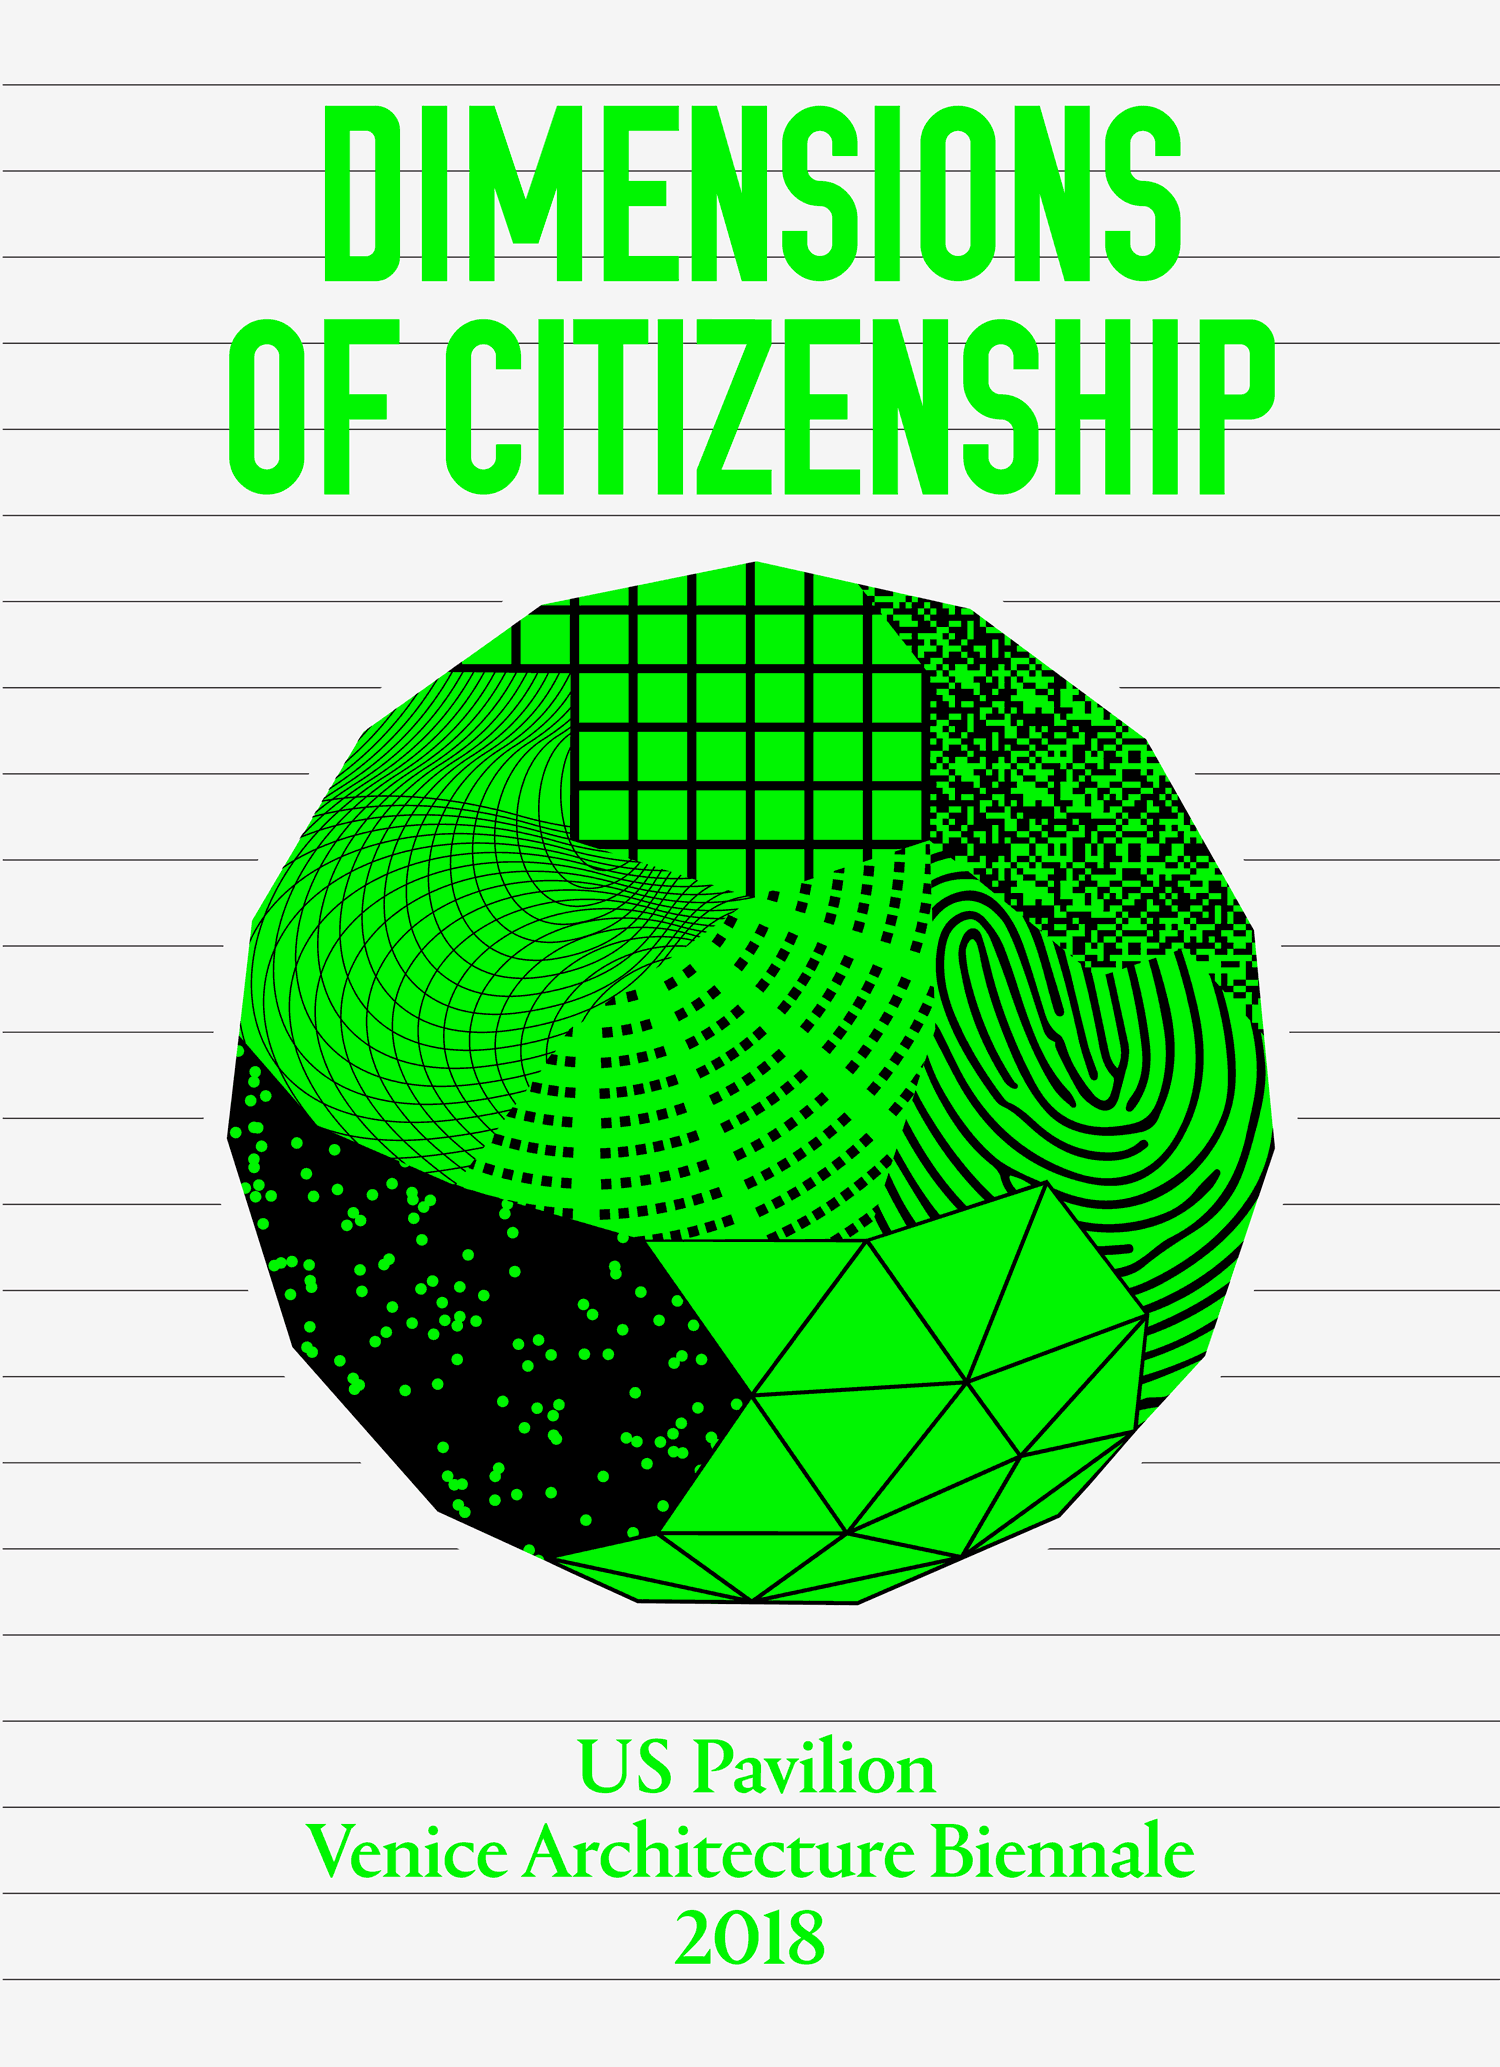 Dimensions of Citizenship design